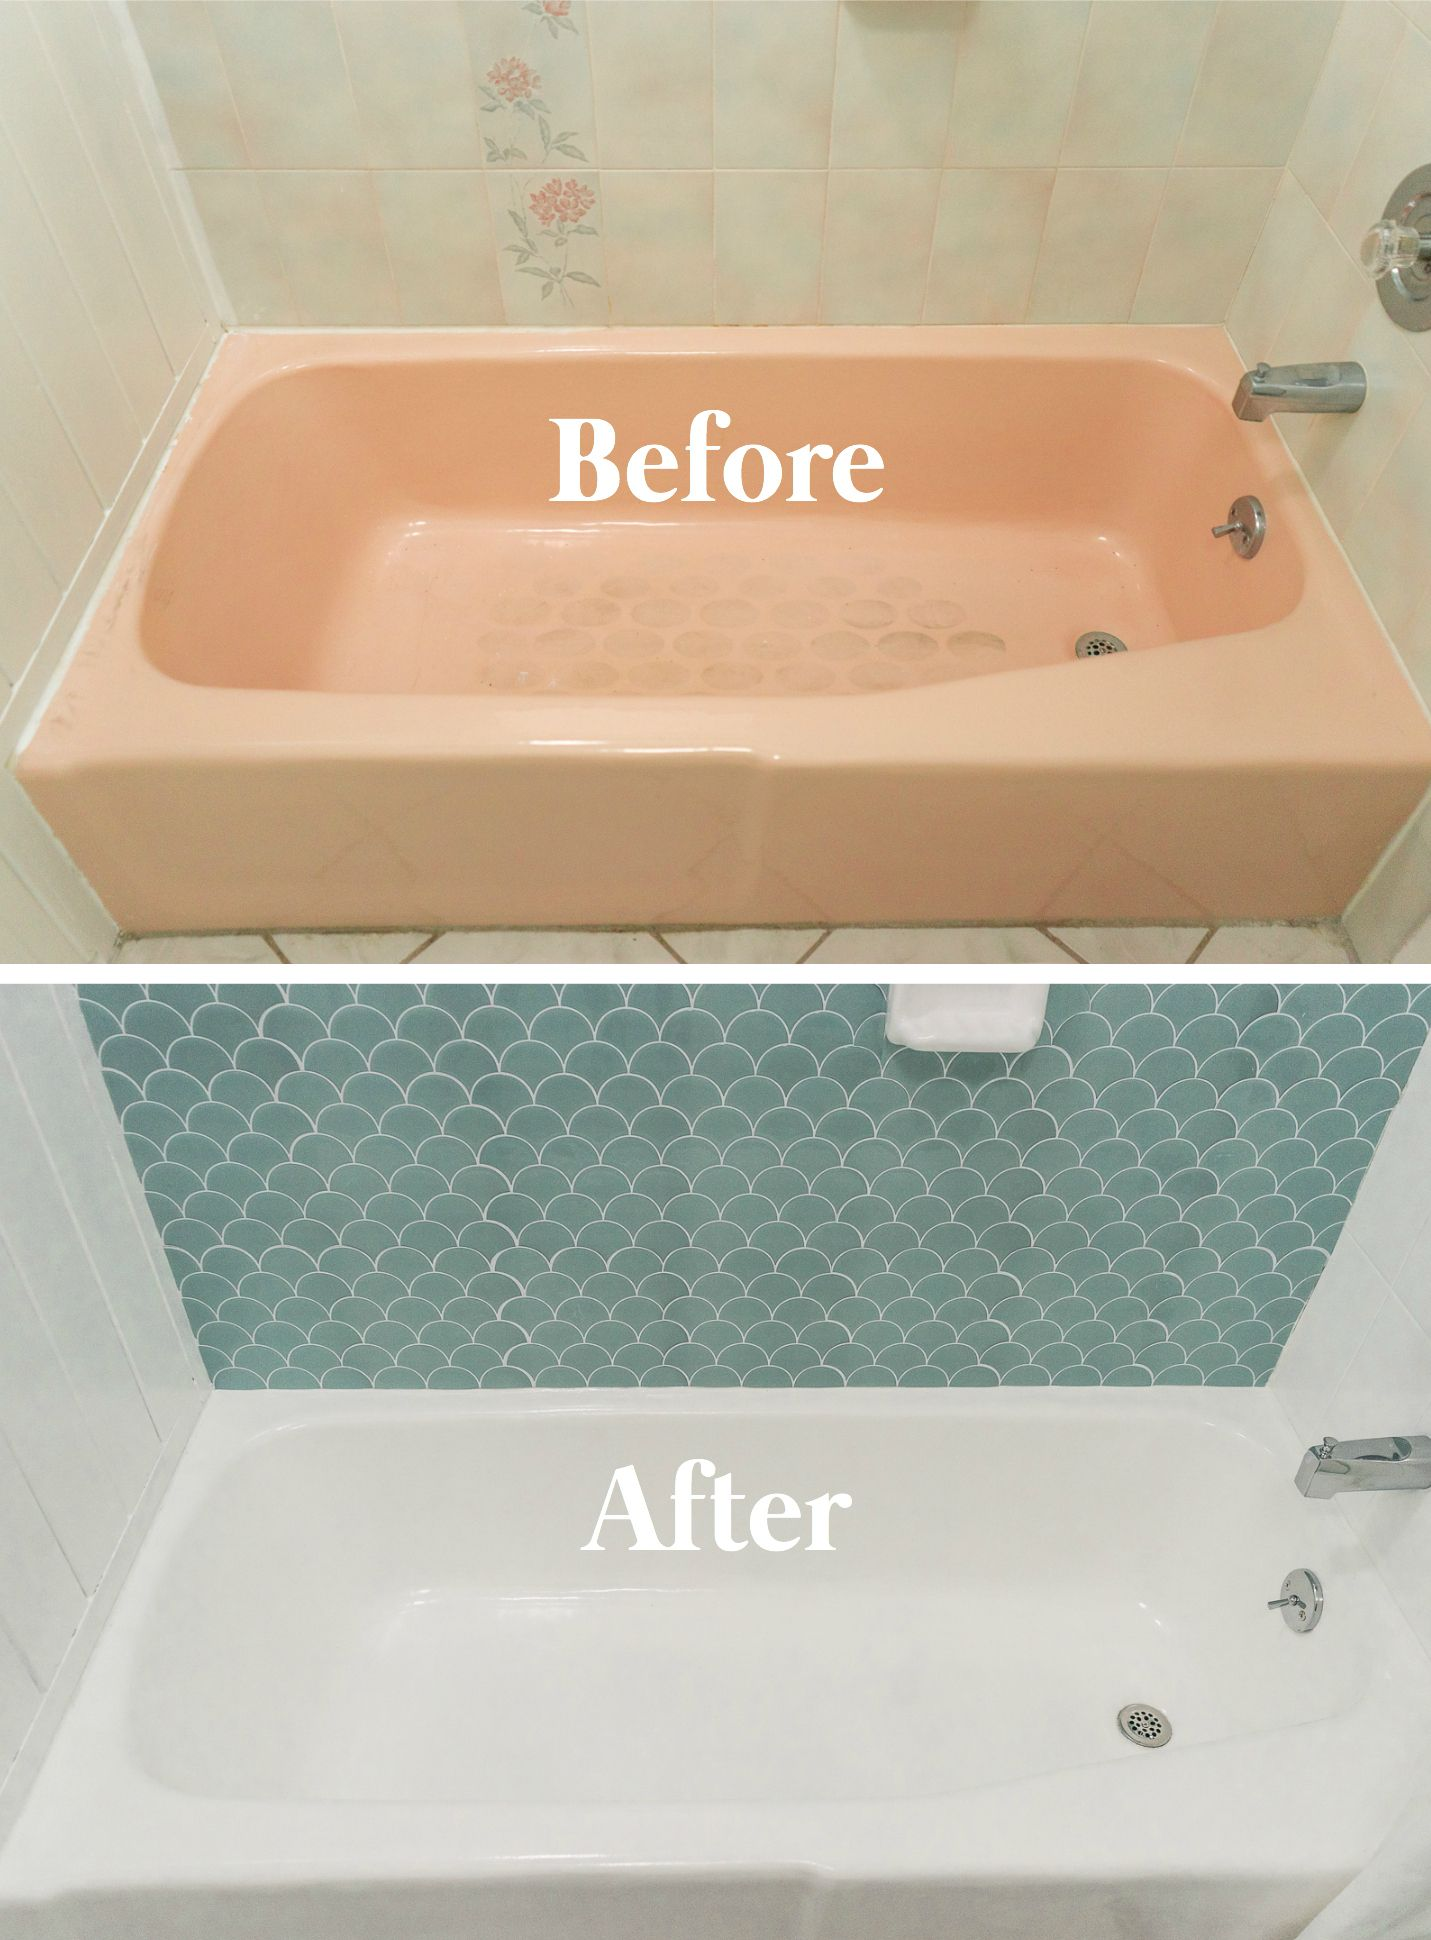 How To Paint A Bathtub And Shower For 50 In 2020 With Images